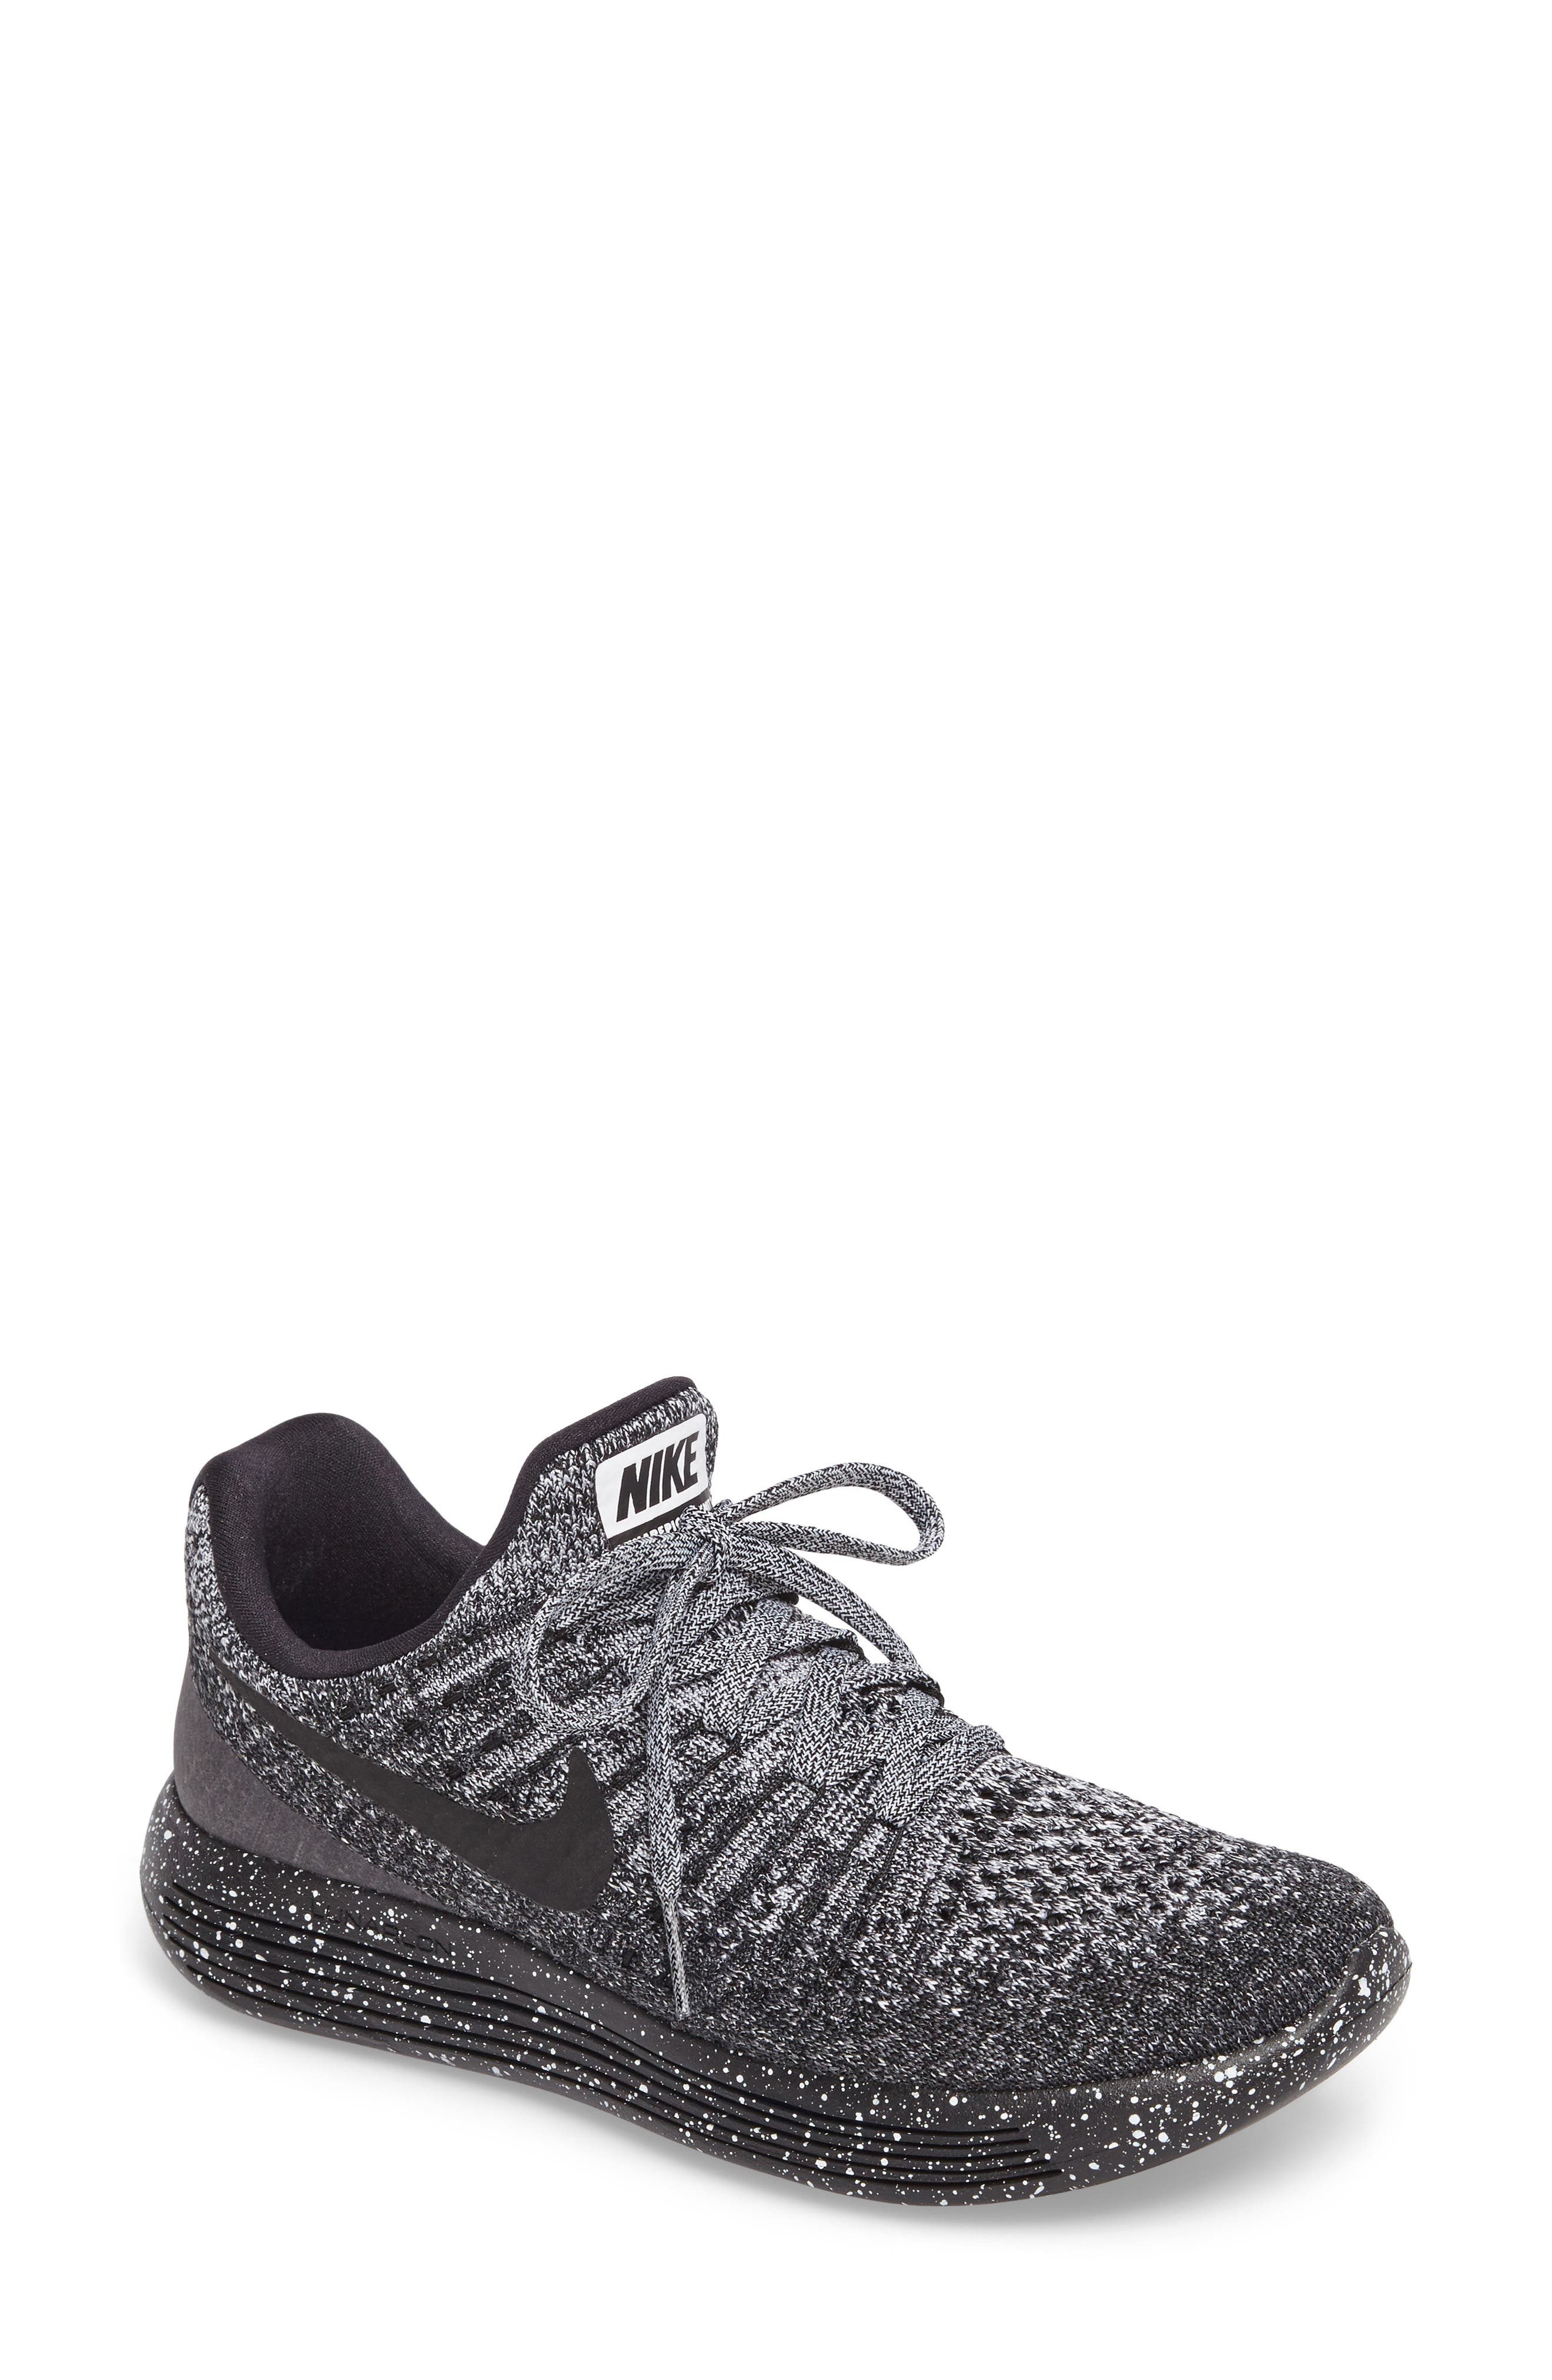 ,                             LunarEpic Low Flyknit 2 Running Shoe,                             Main thumbnail 41, color,                             026